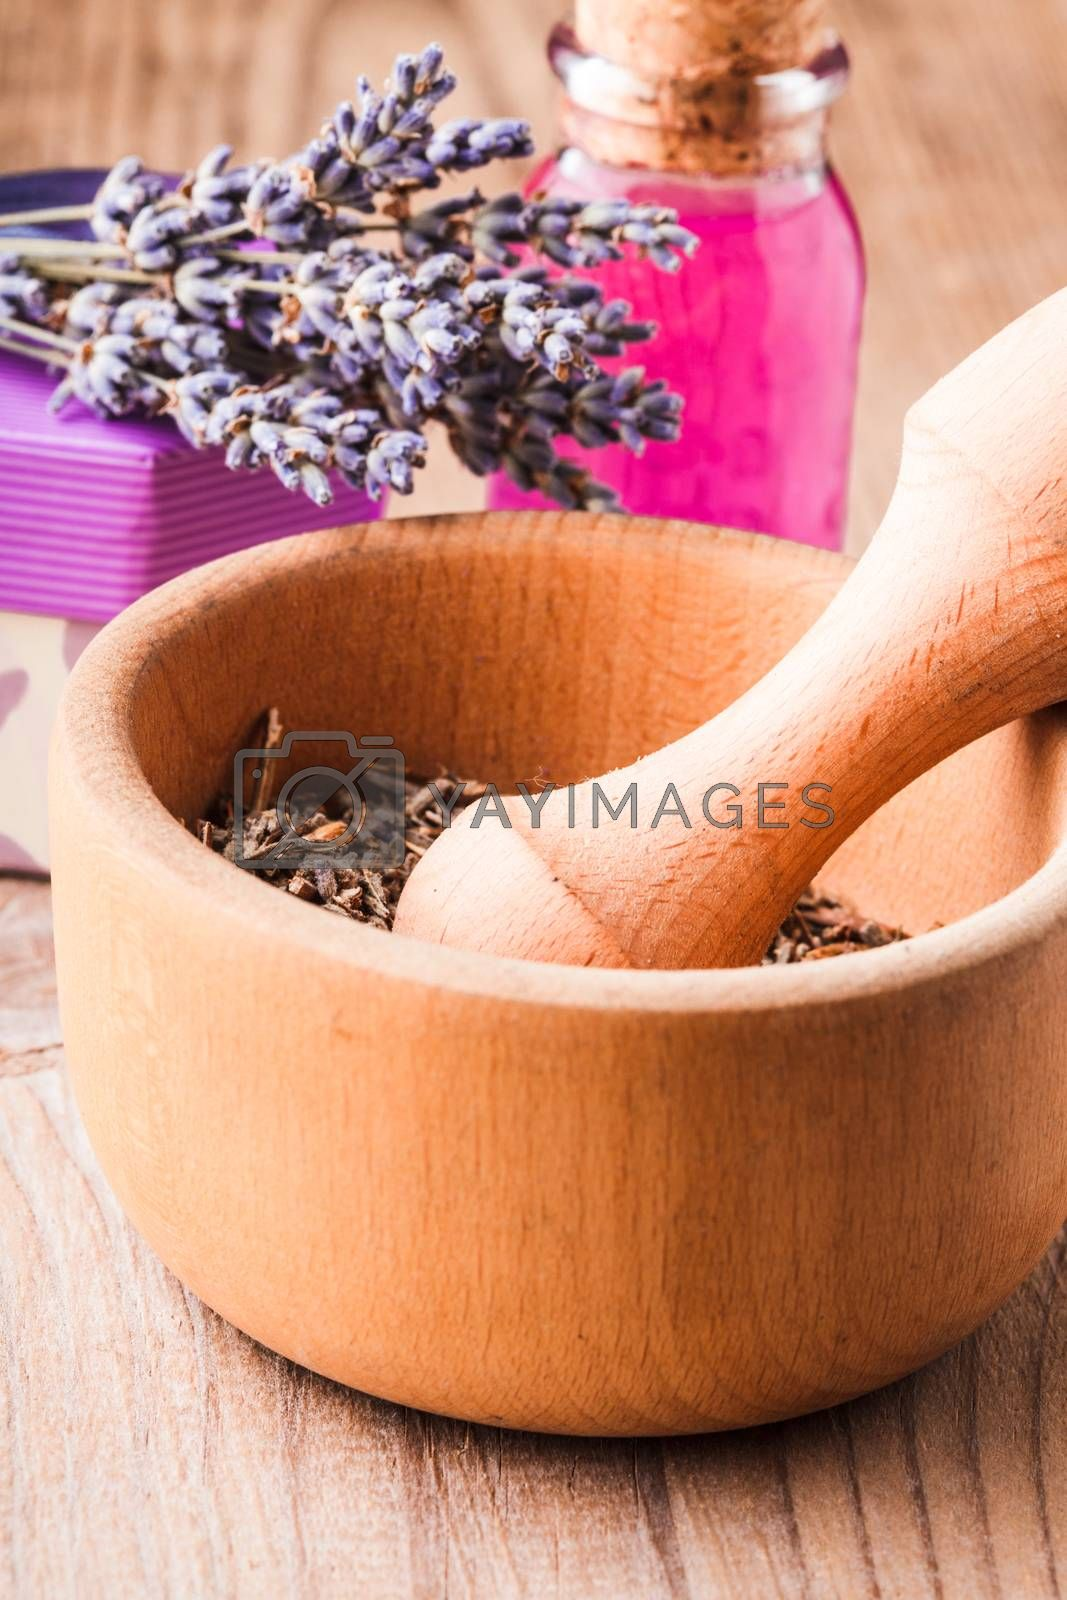 Dry lavender bunch and wooden mortar, preparation